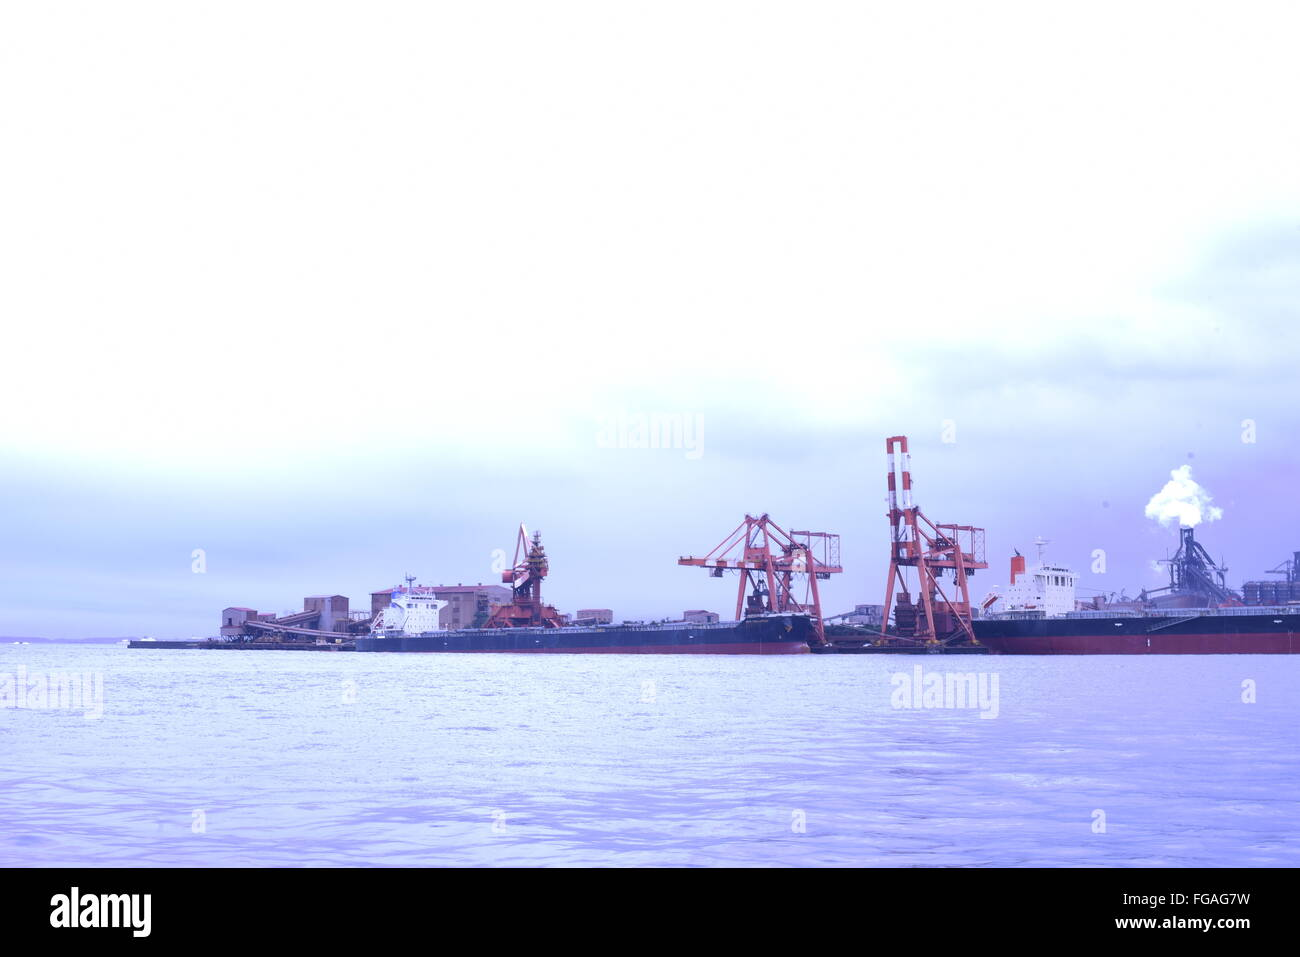 Sea By Commercial Dock Against Sky - Stock Image